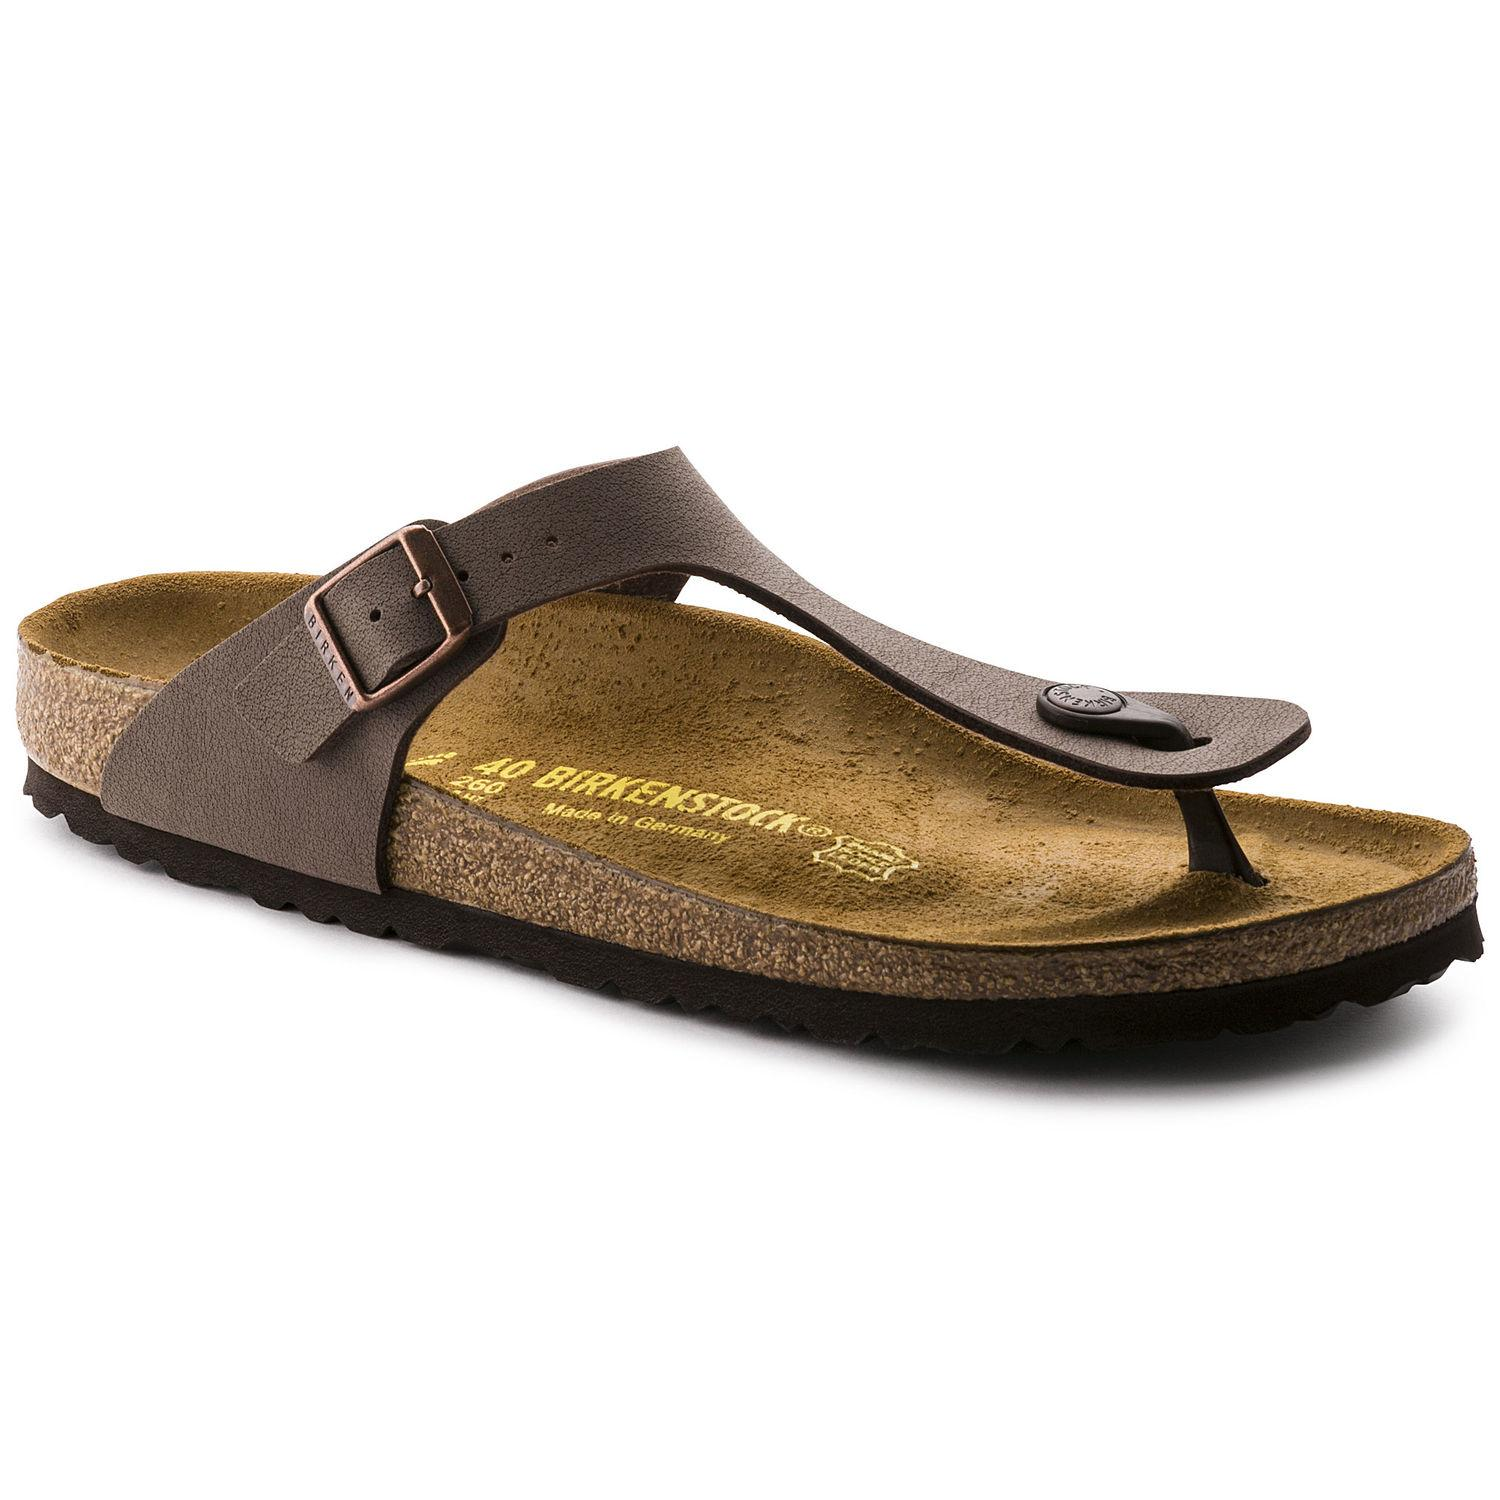 6afdb87cf233 Birkenstock Gizeh Birko-Flor Nubuck Soft Leather Sandals Mocca colour